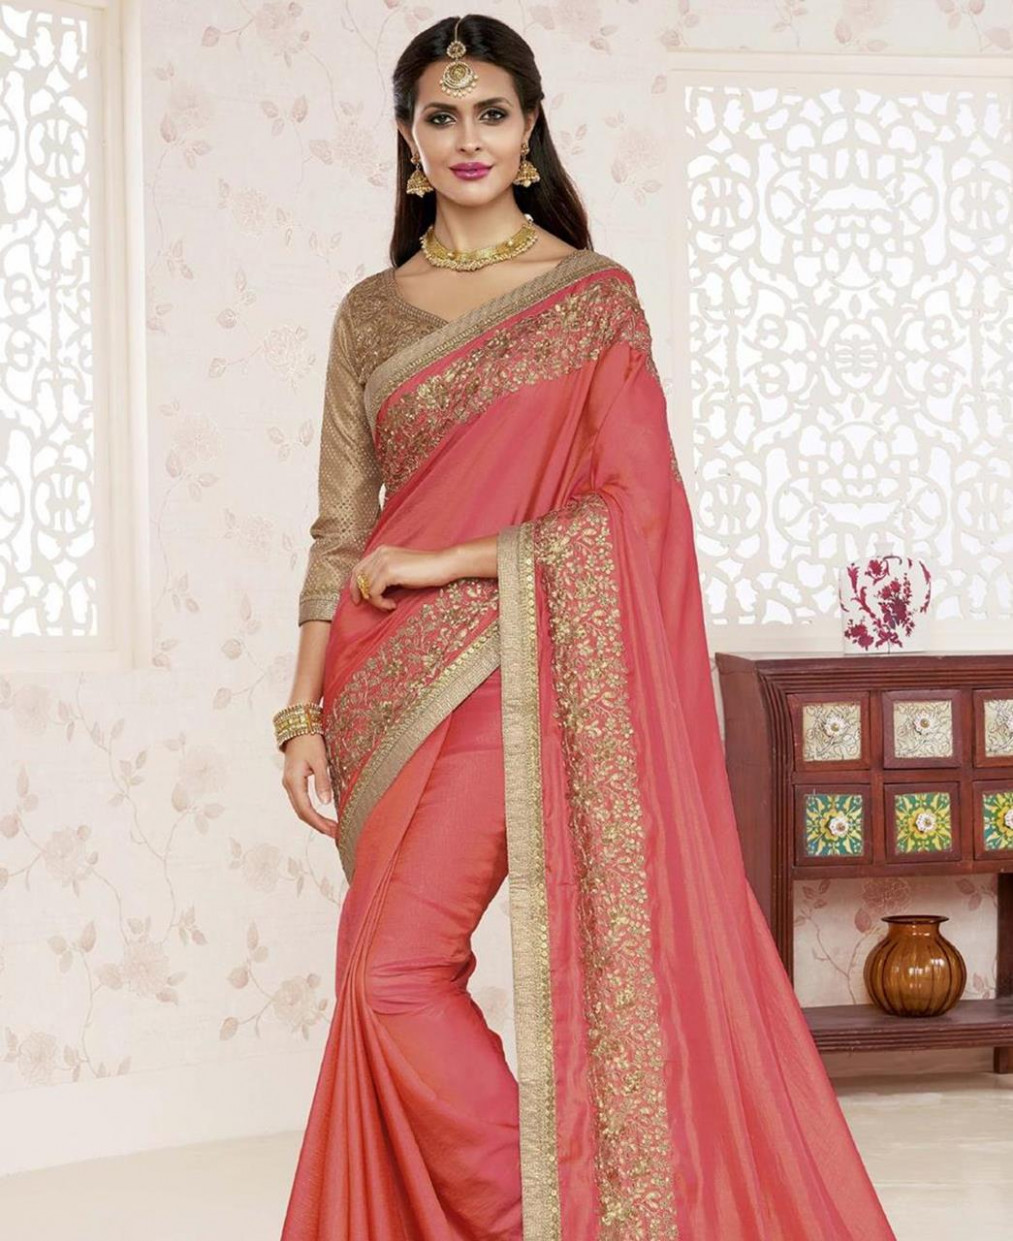 Buy Elegant Peach Fashion Saree [100913] at ₹ 4,169.53